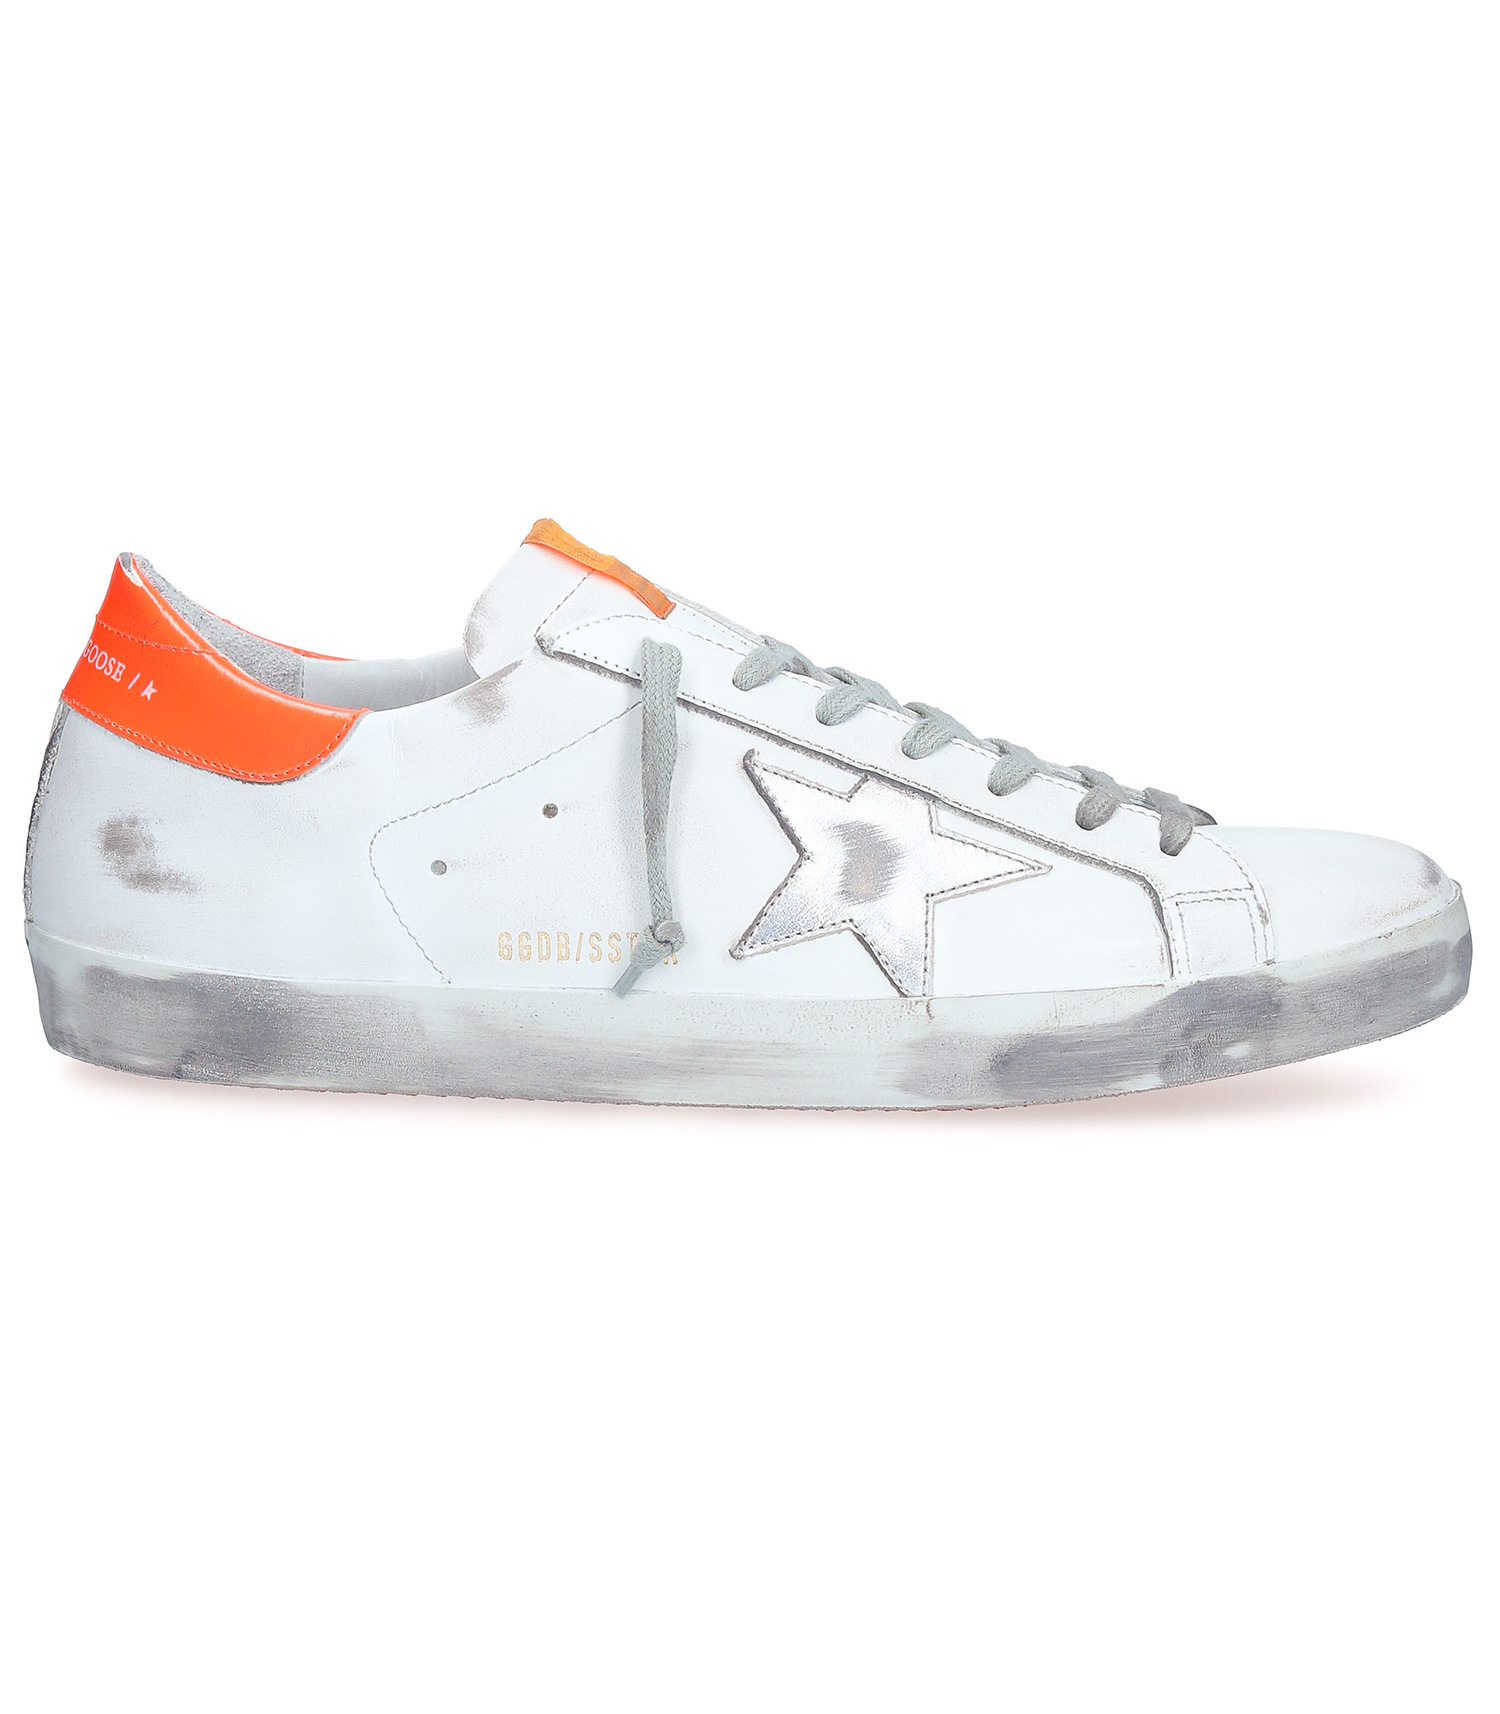 Sneakers Superstar Homme blanches et orange fluo Golden Goose